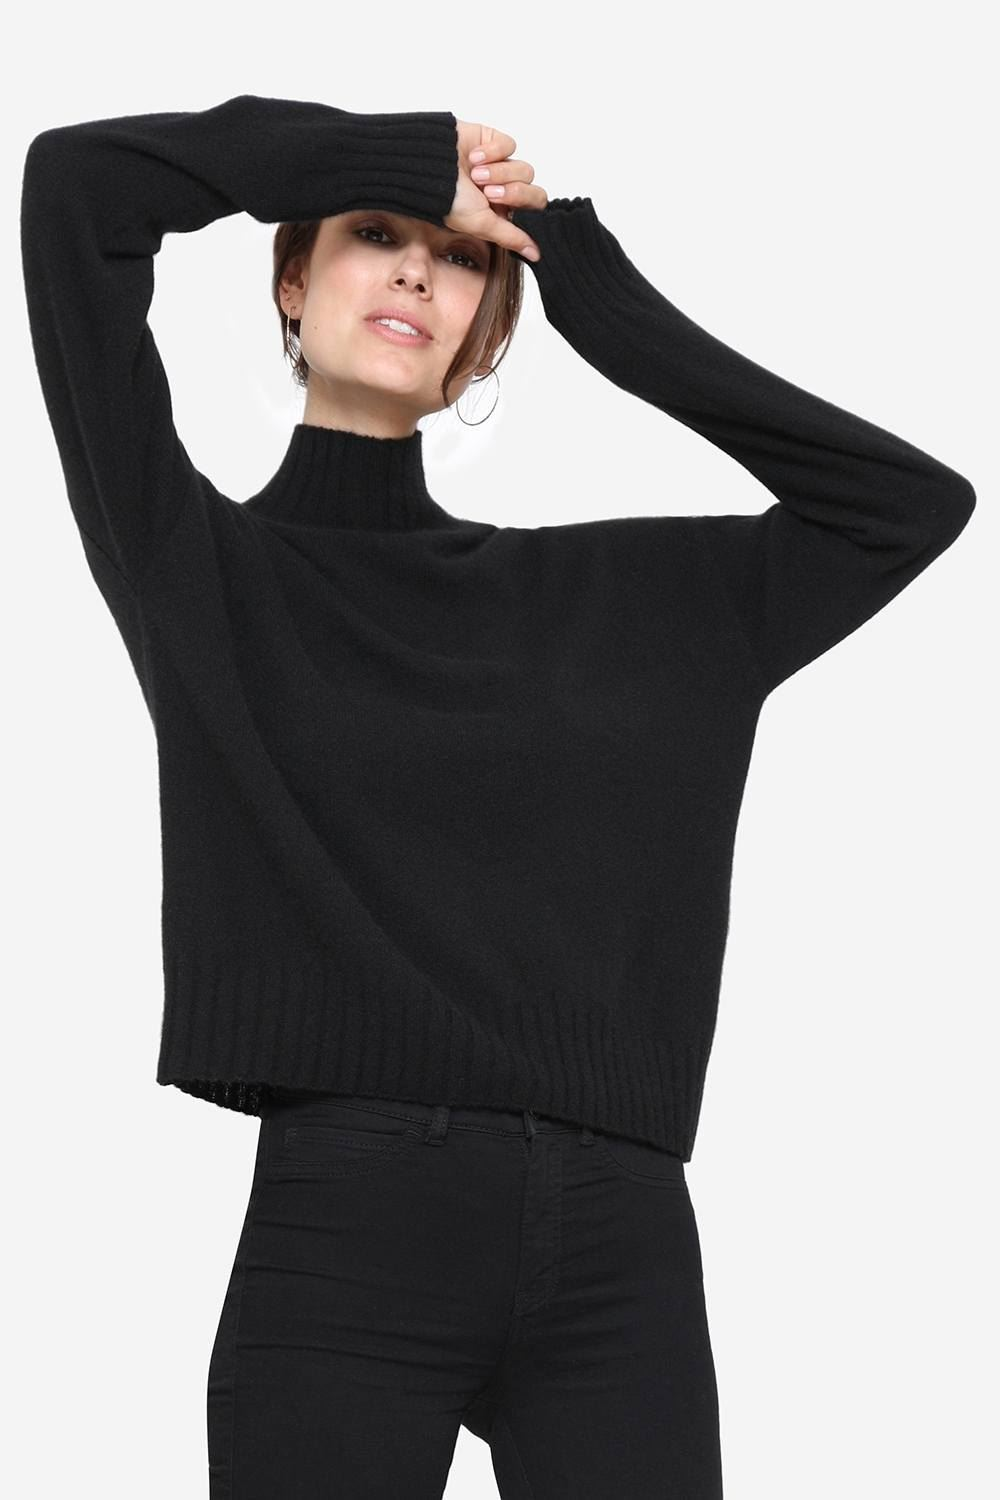 Black cashmere nursing sweater with small collar, front view